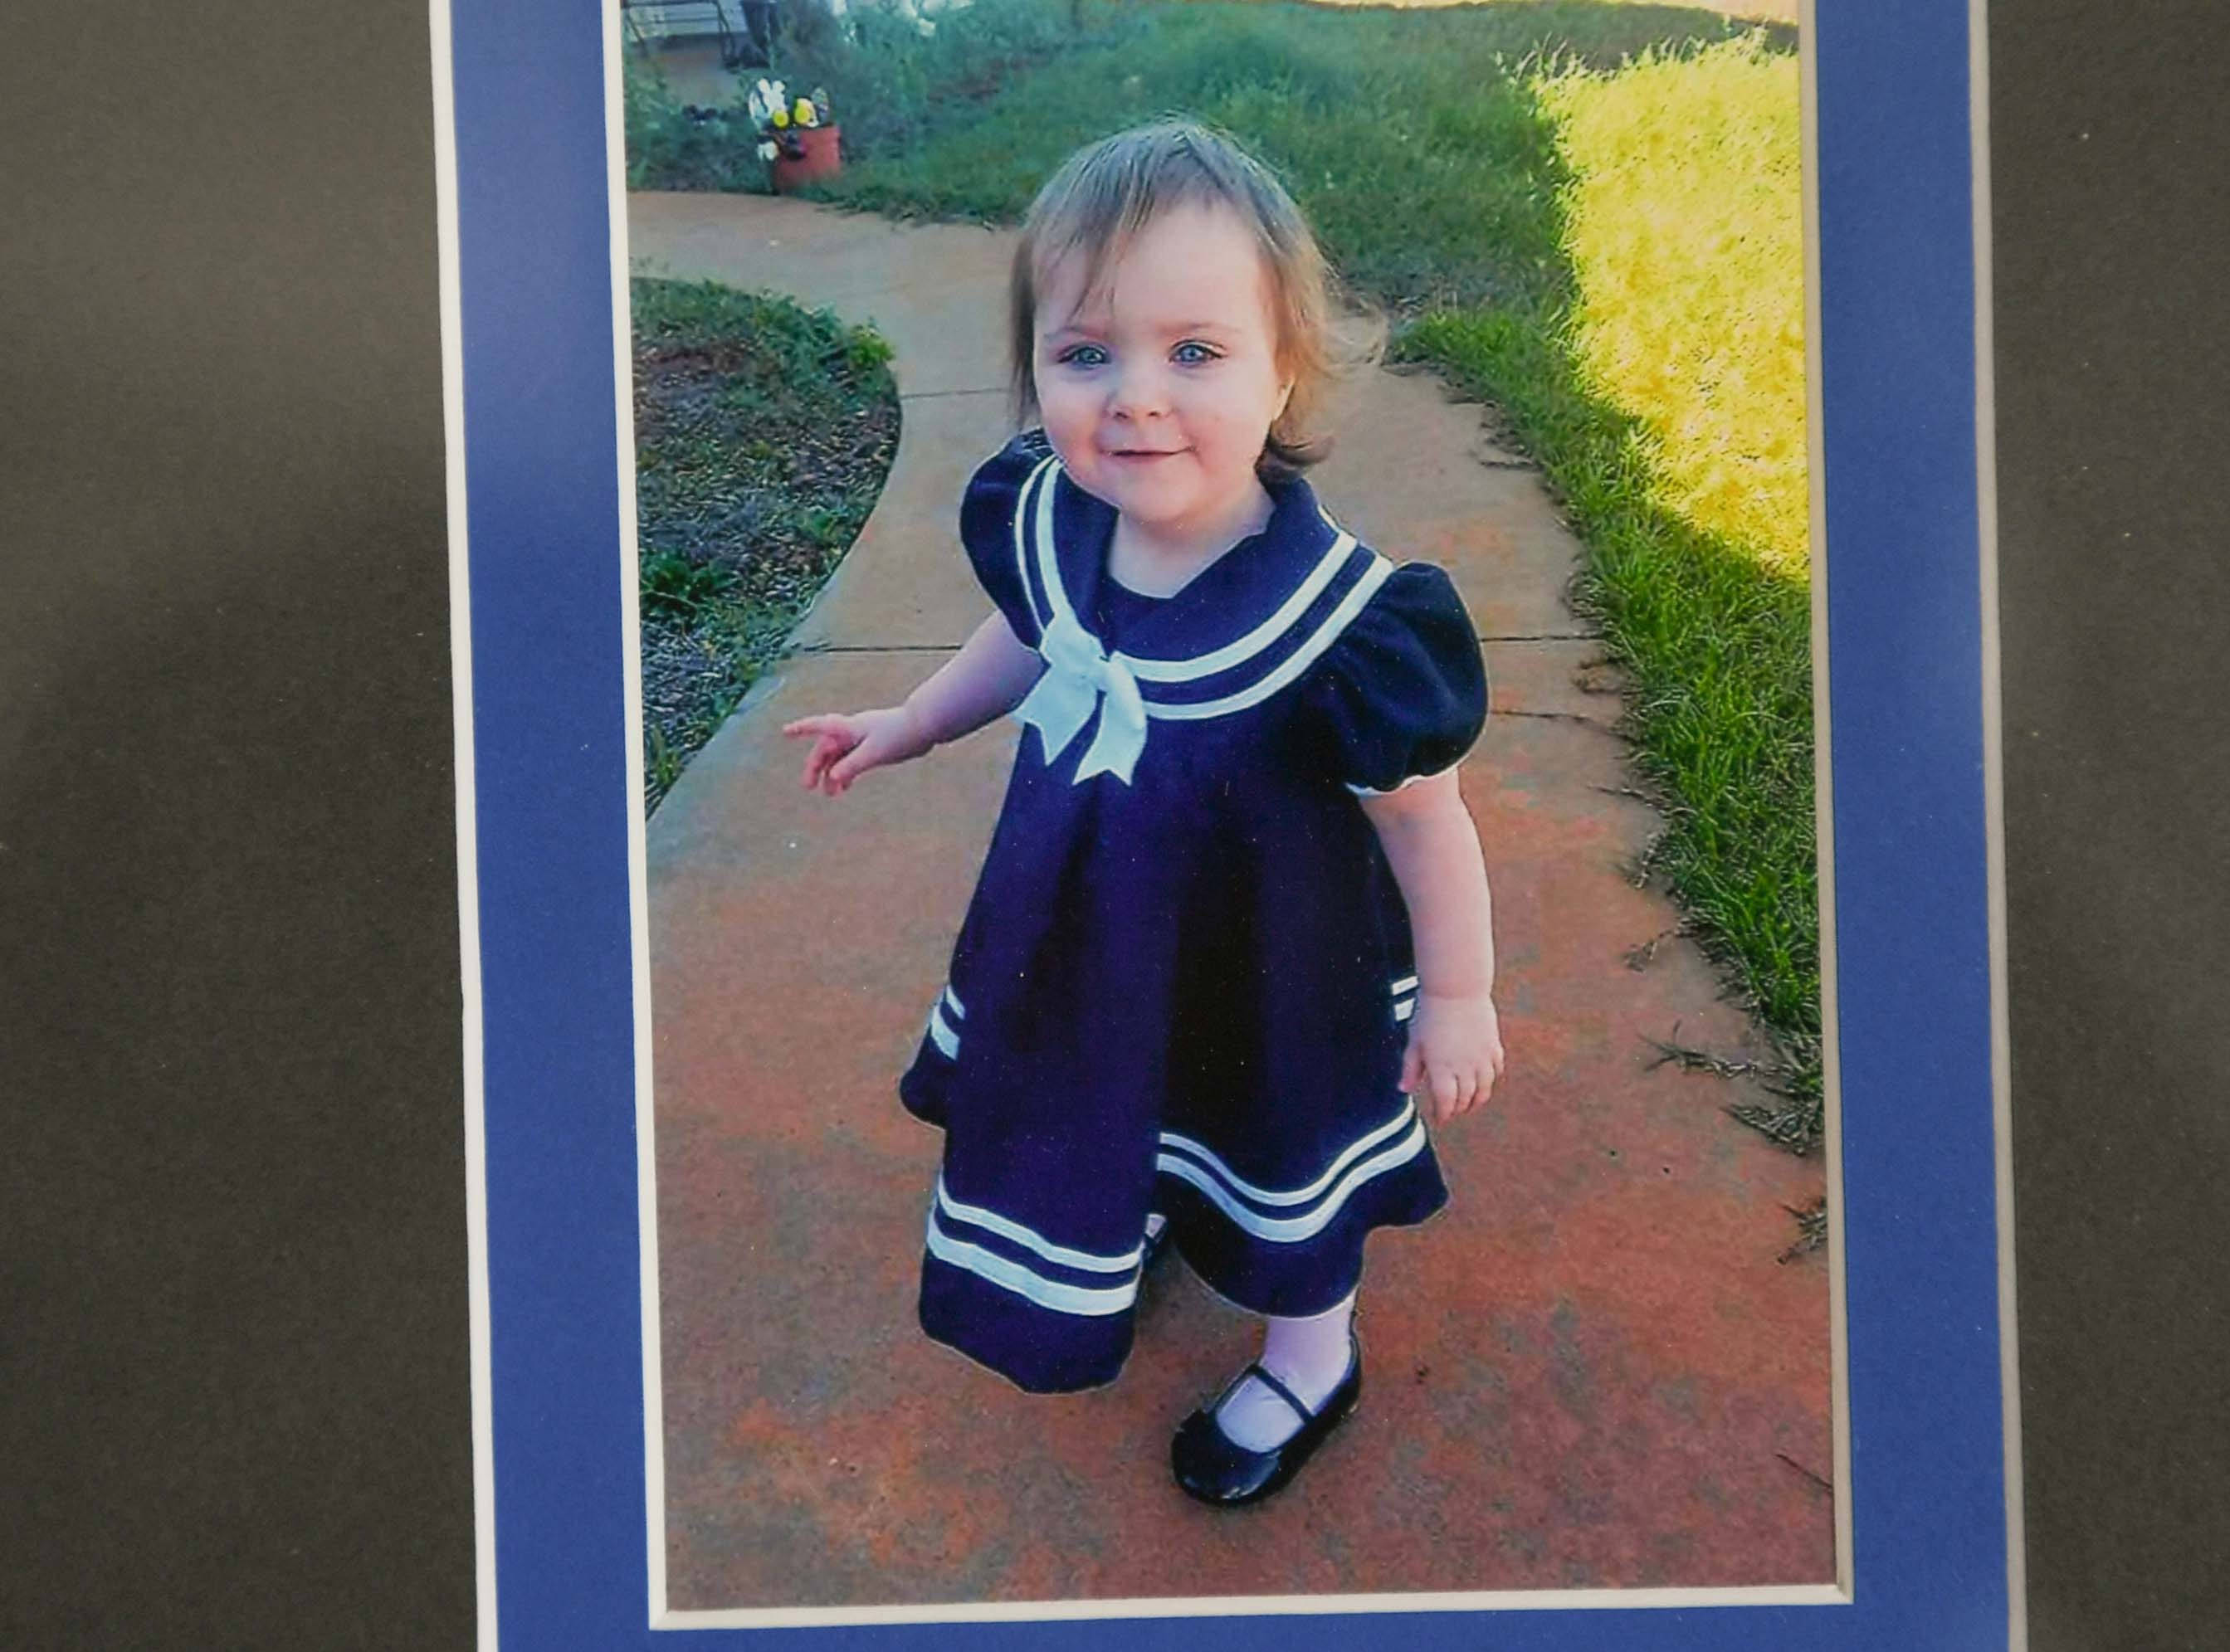 "A framed photo of the late Gwynne Ann-Marie Hess, before an office dedication of the Foothills Alliance Oconee County Gwynnie Bee House in Walhalla Friday. Foothills Alliance, who with partners provides education, advocacy, and treatment services to prevent sexual assault trauma and child abuse services in Anderson and Oconee Counties, branched out from their Anderson office with an office in Walhalla last August. Gwynne Ann-Marie Hess, ""Gwynnie Bee, died in 2017 from child abuse, and the office was renamed after her Friday in the presence of family, law enforcement, Sen. Thomas Alexander, Oconee County Sheriff Michael Crenshaw, and Tenth Circuit Solicitor David Wagner."